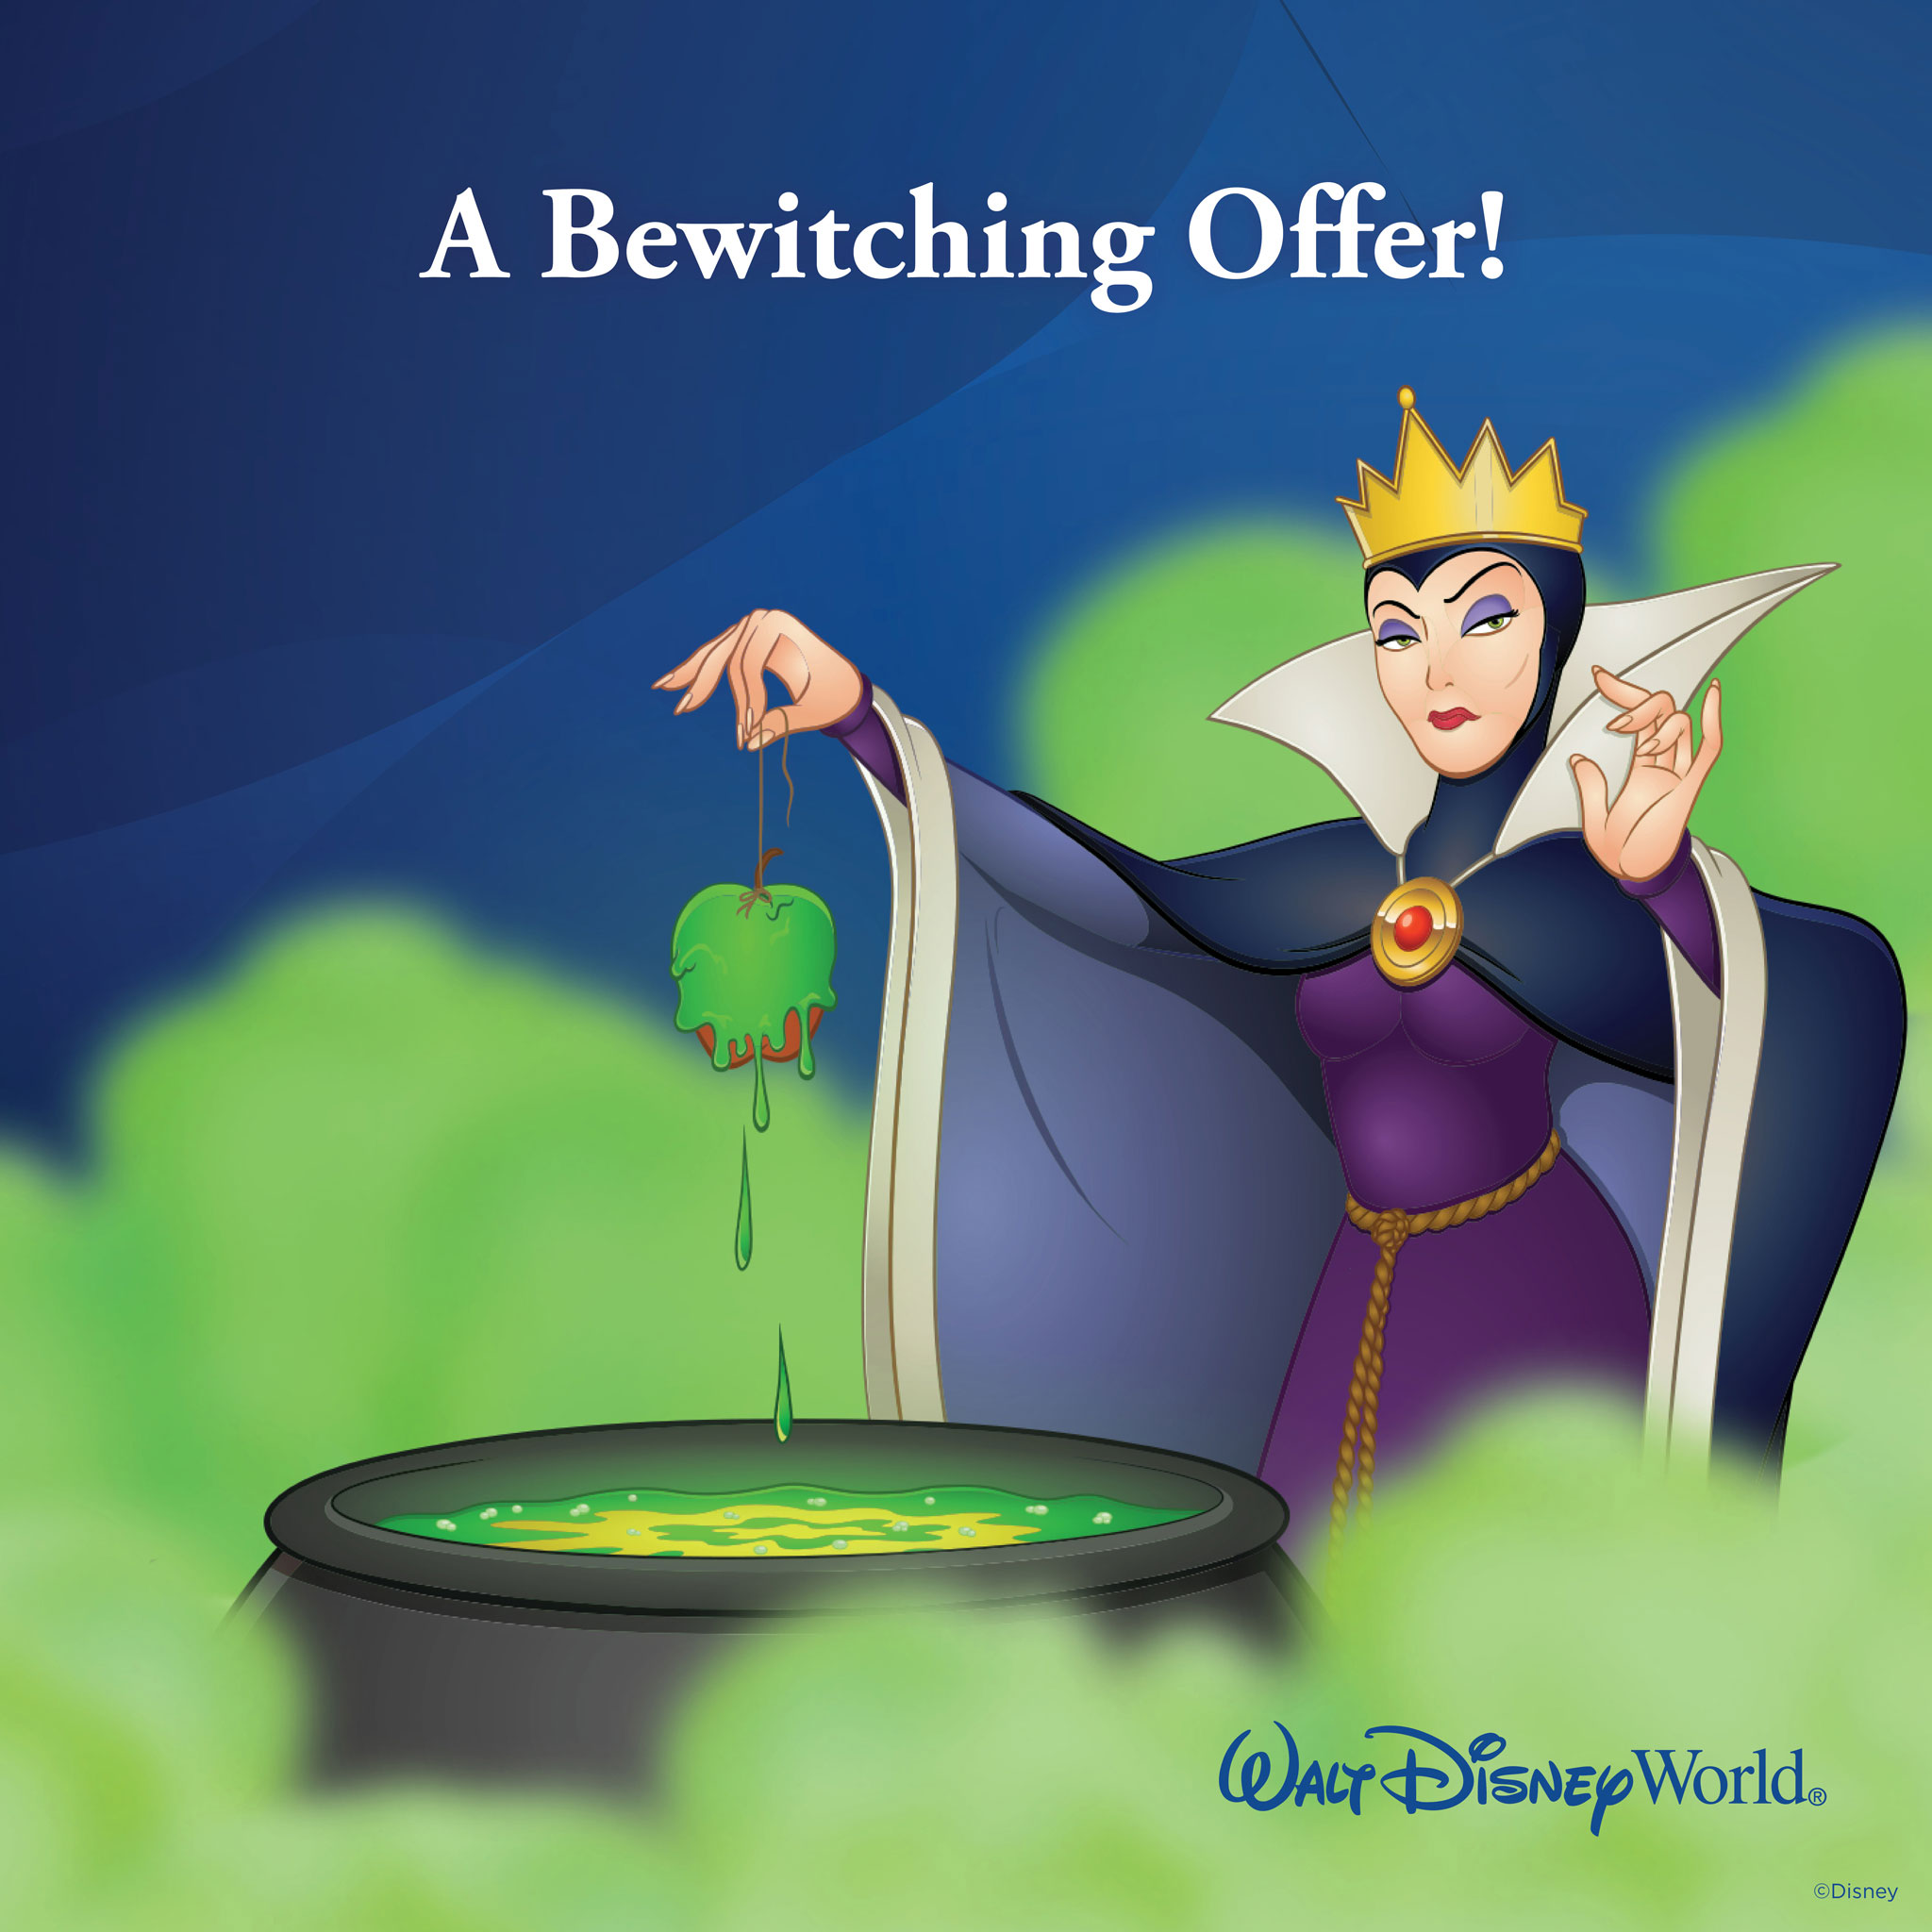 SAVE UP TO 20% ON ROOMS AT SELECT WALT DISNEY WORLD RESORT HOTELS THIS FALL!